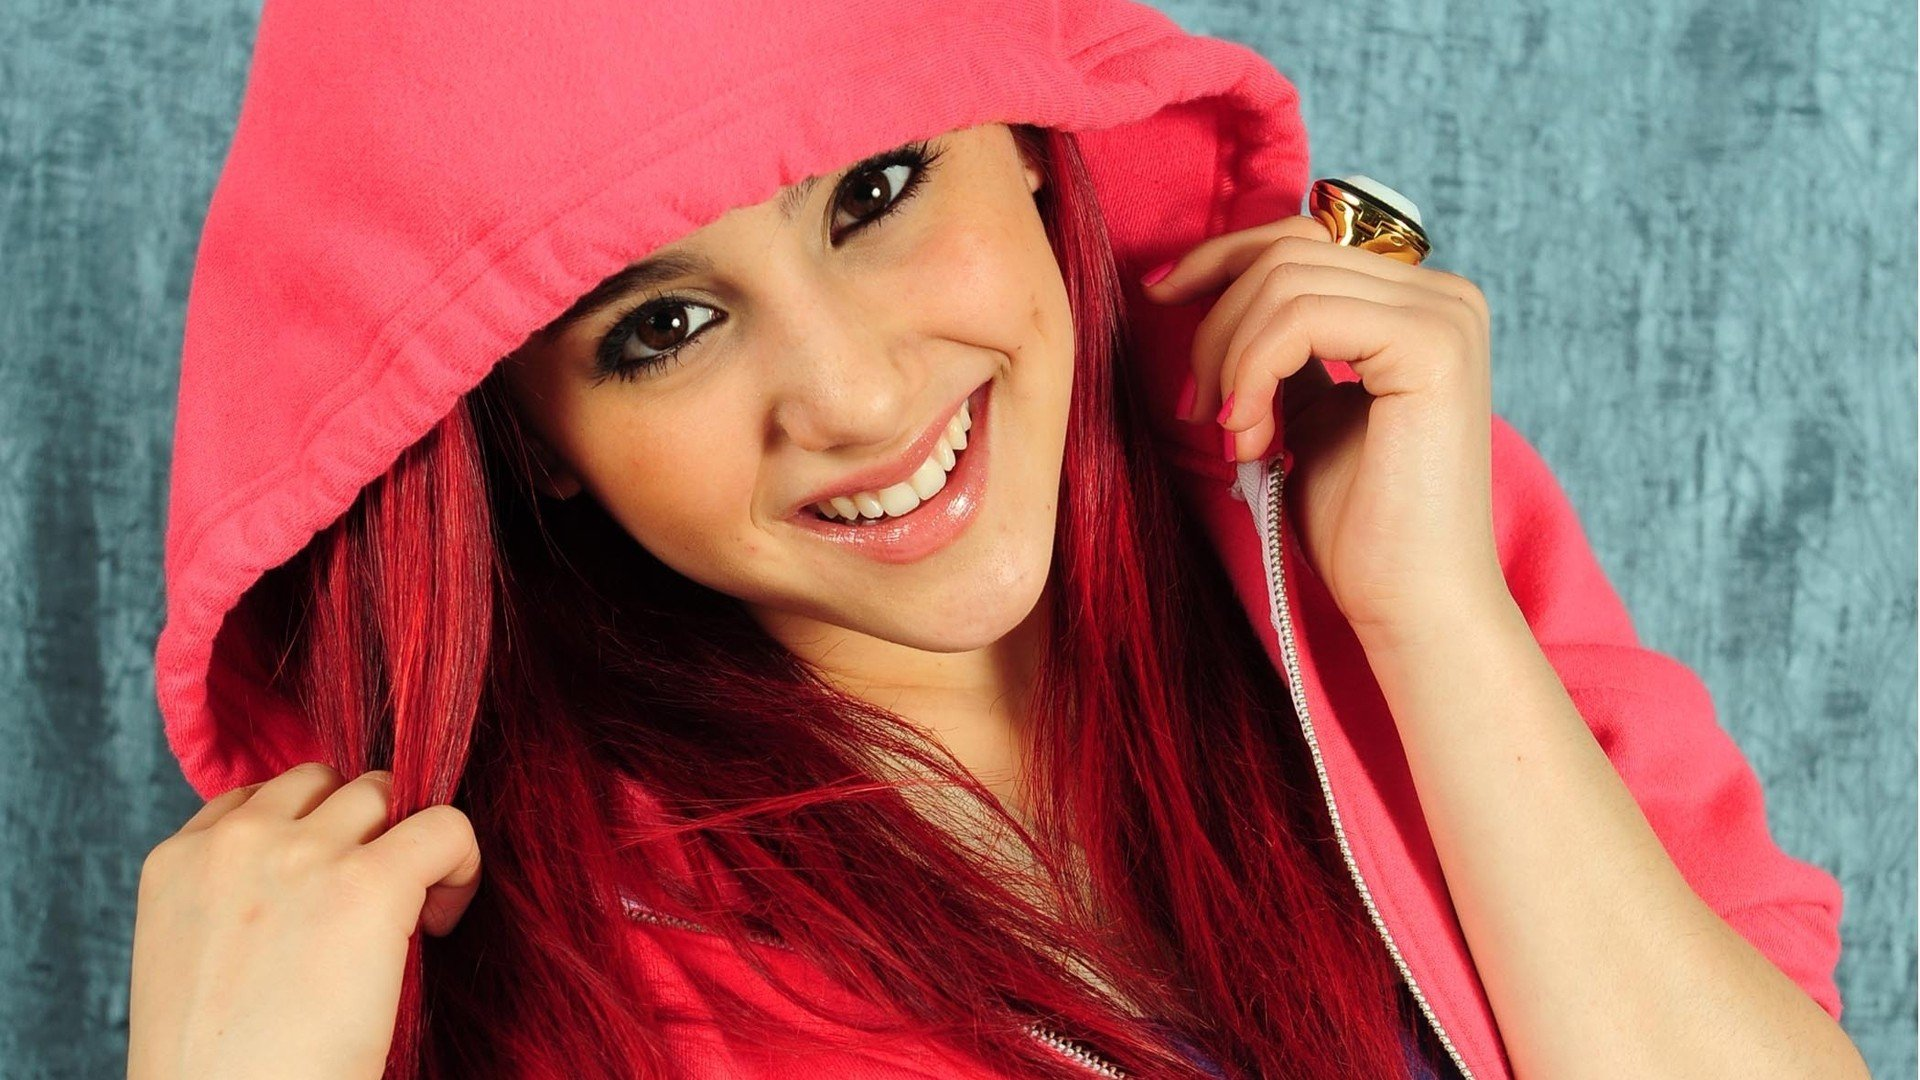 Cute Smile Ariana Grande Celebrity Wallpaper-1920x1080